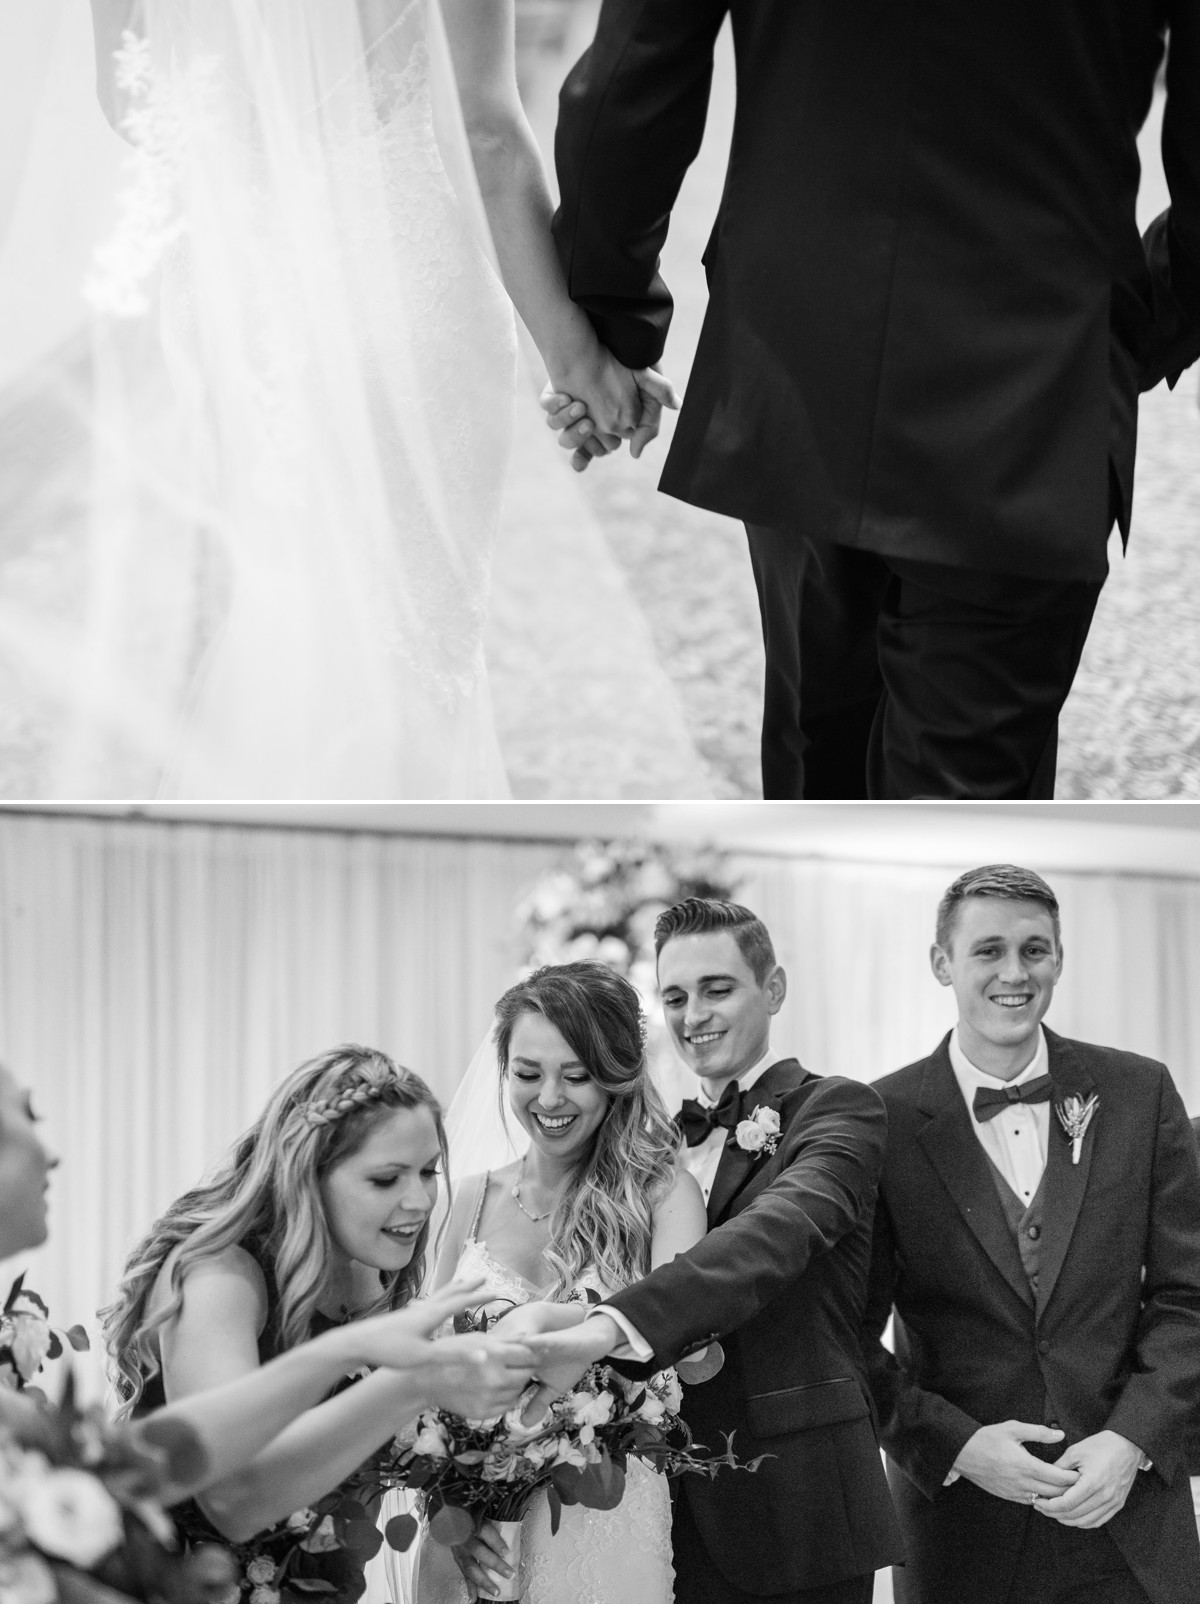 Manor House Wedding at The Houstonian Hotel Bride and Groom Rings holding hands